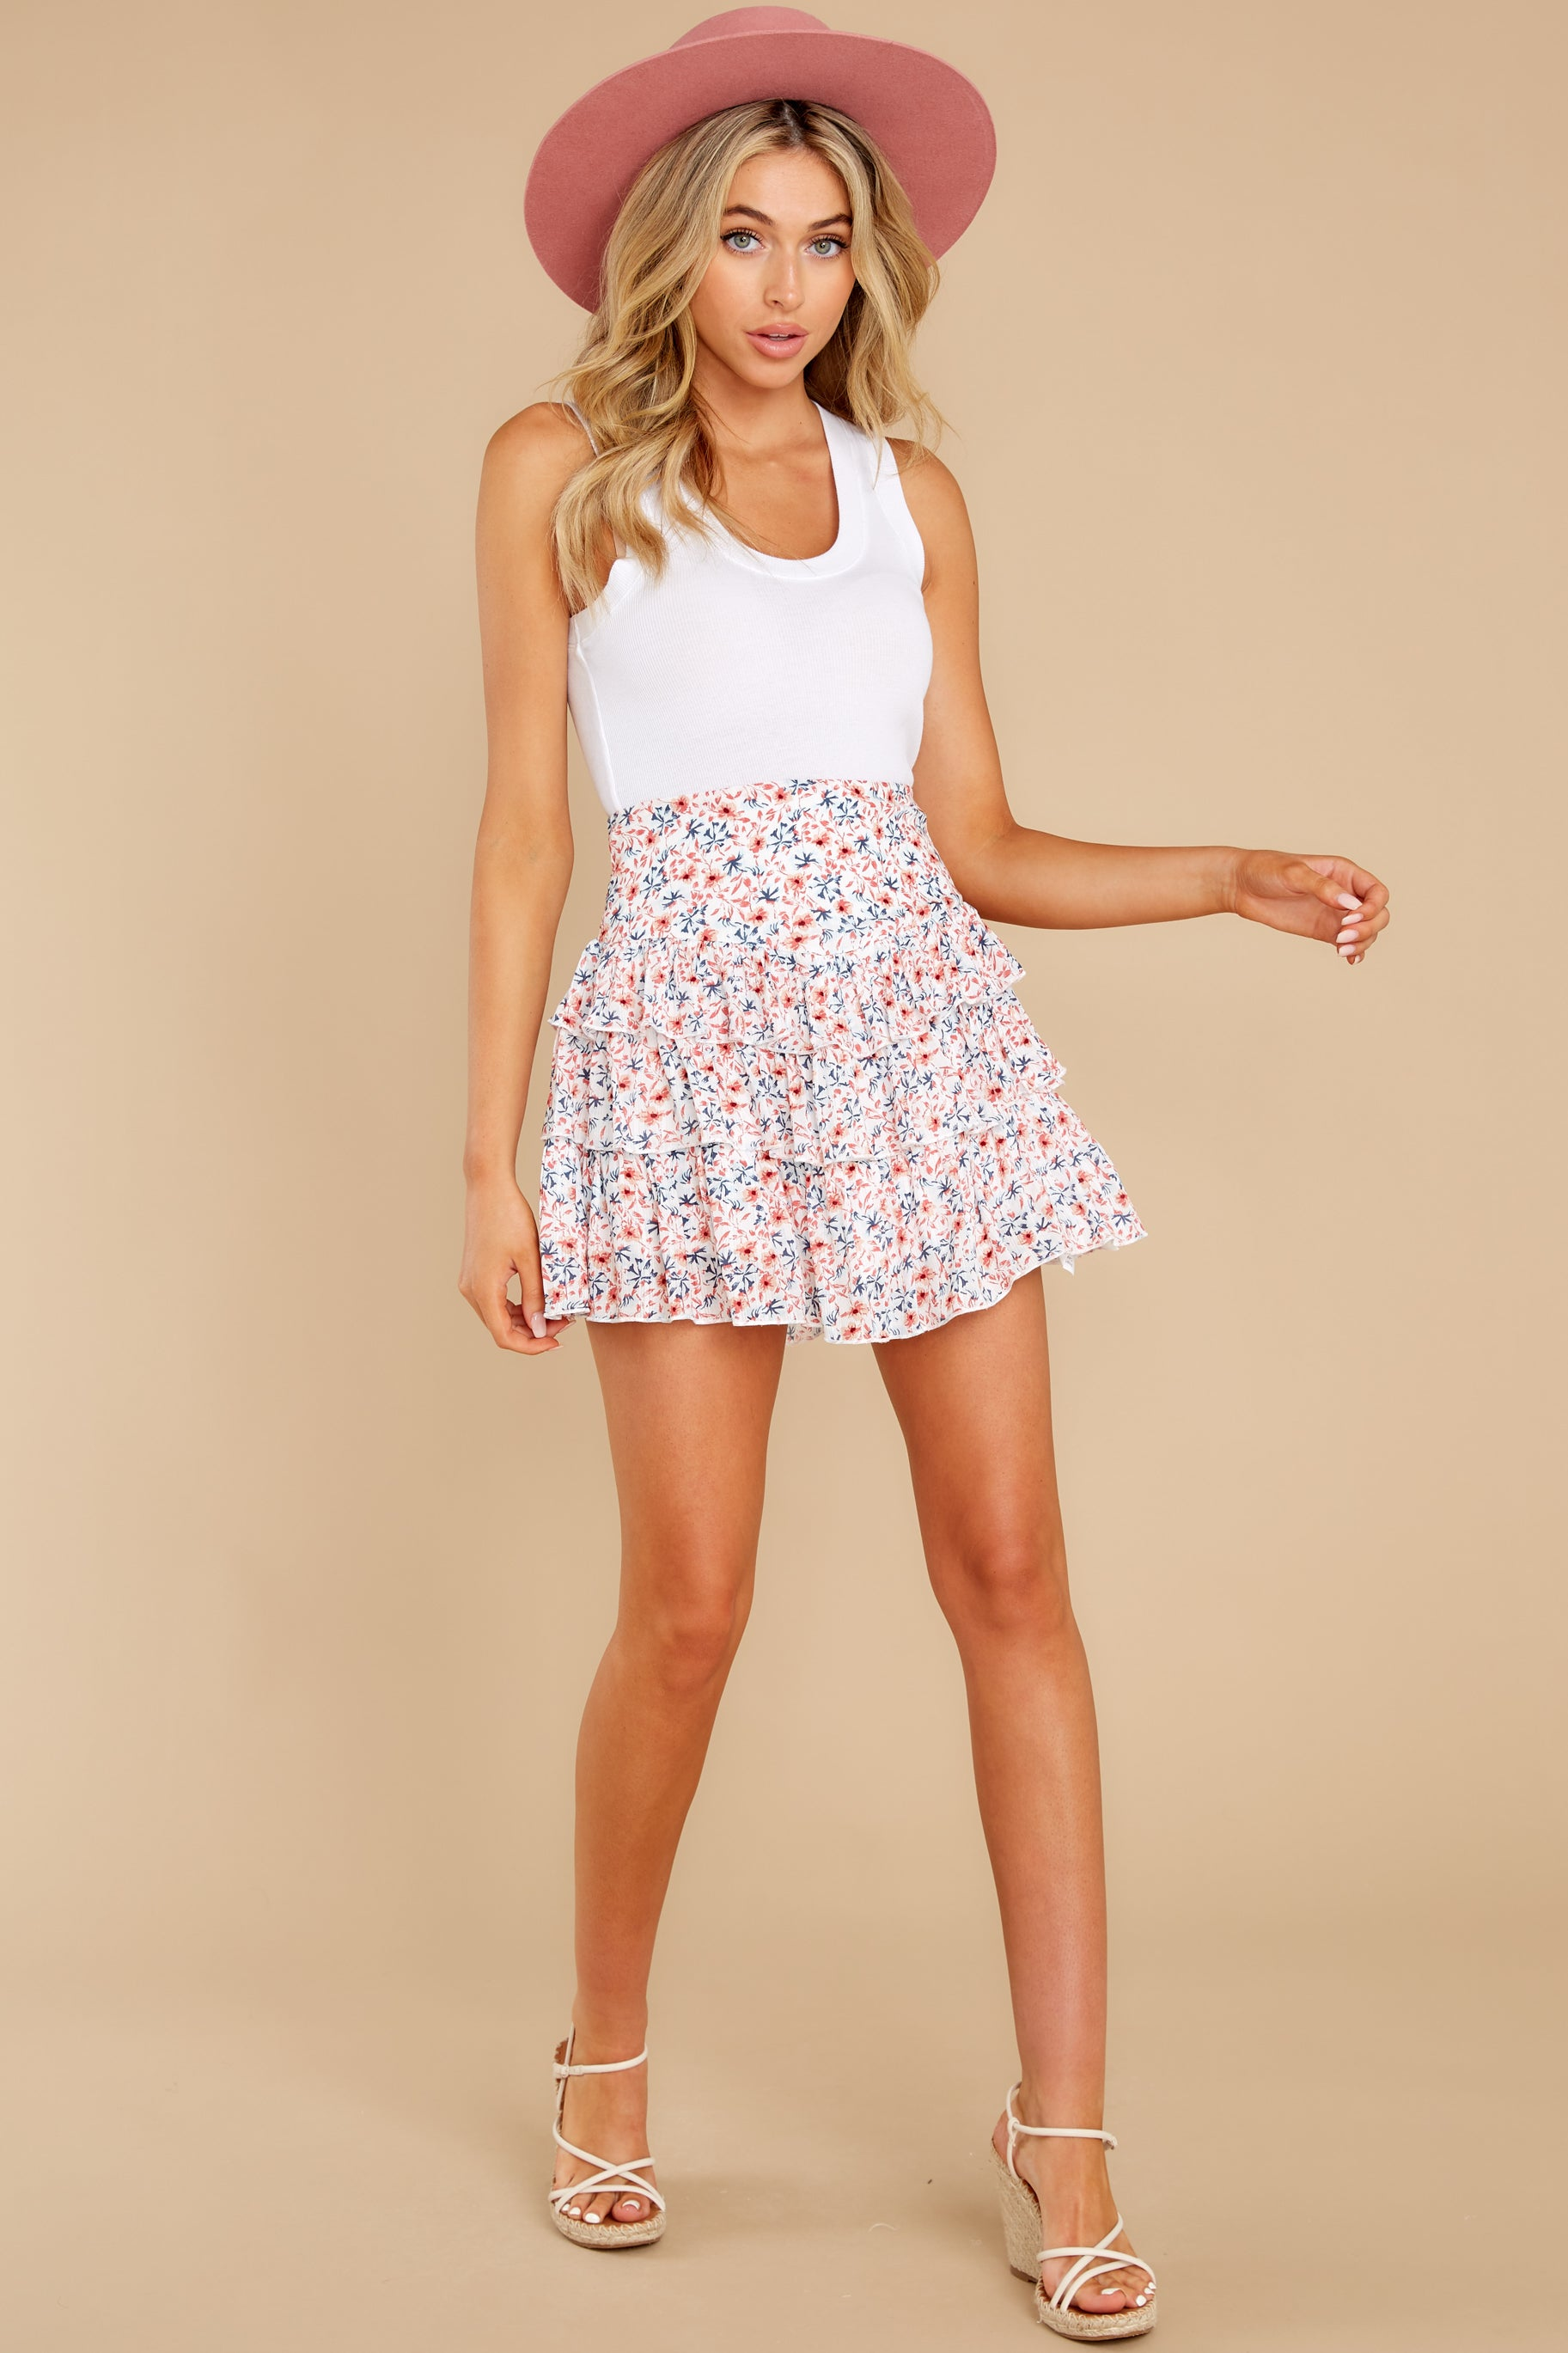 6 Heat Wave White Floral Print Mini Skirt at reddress.com